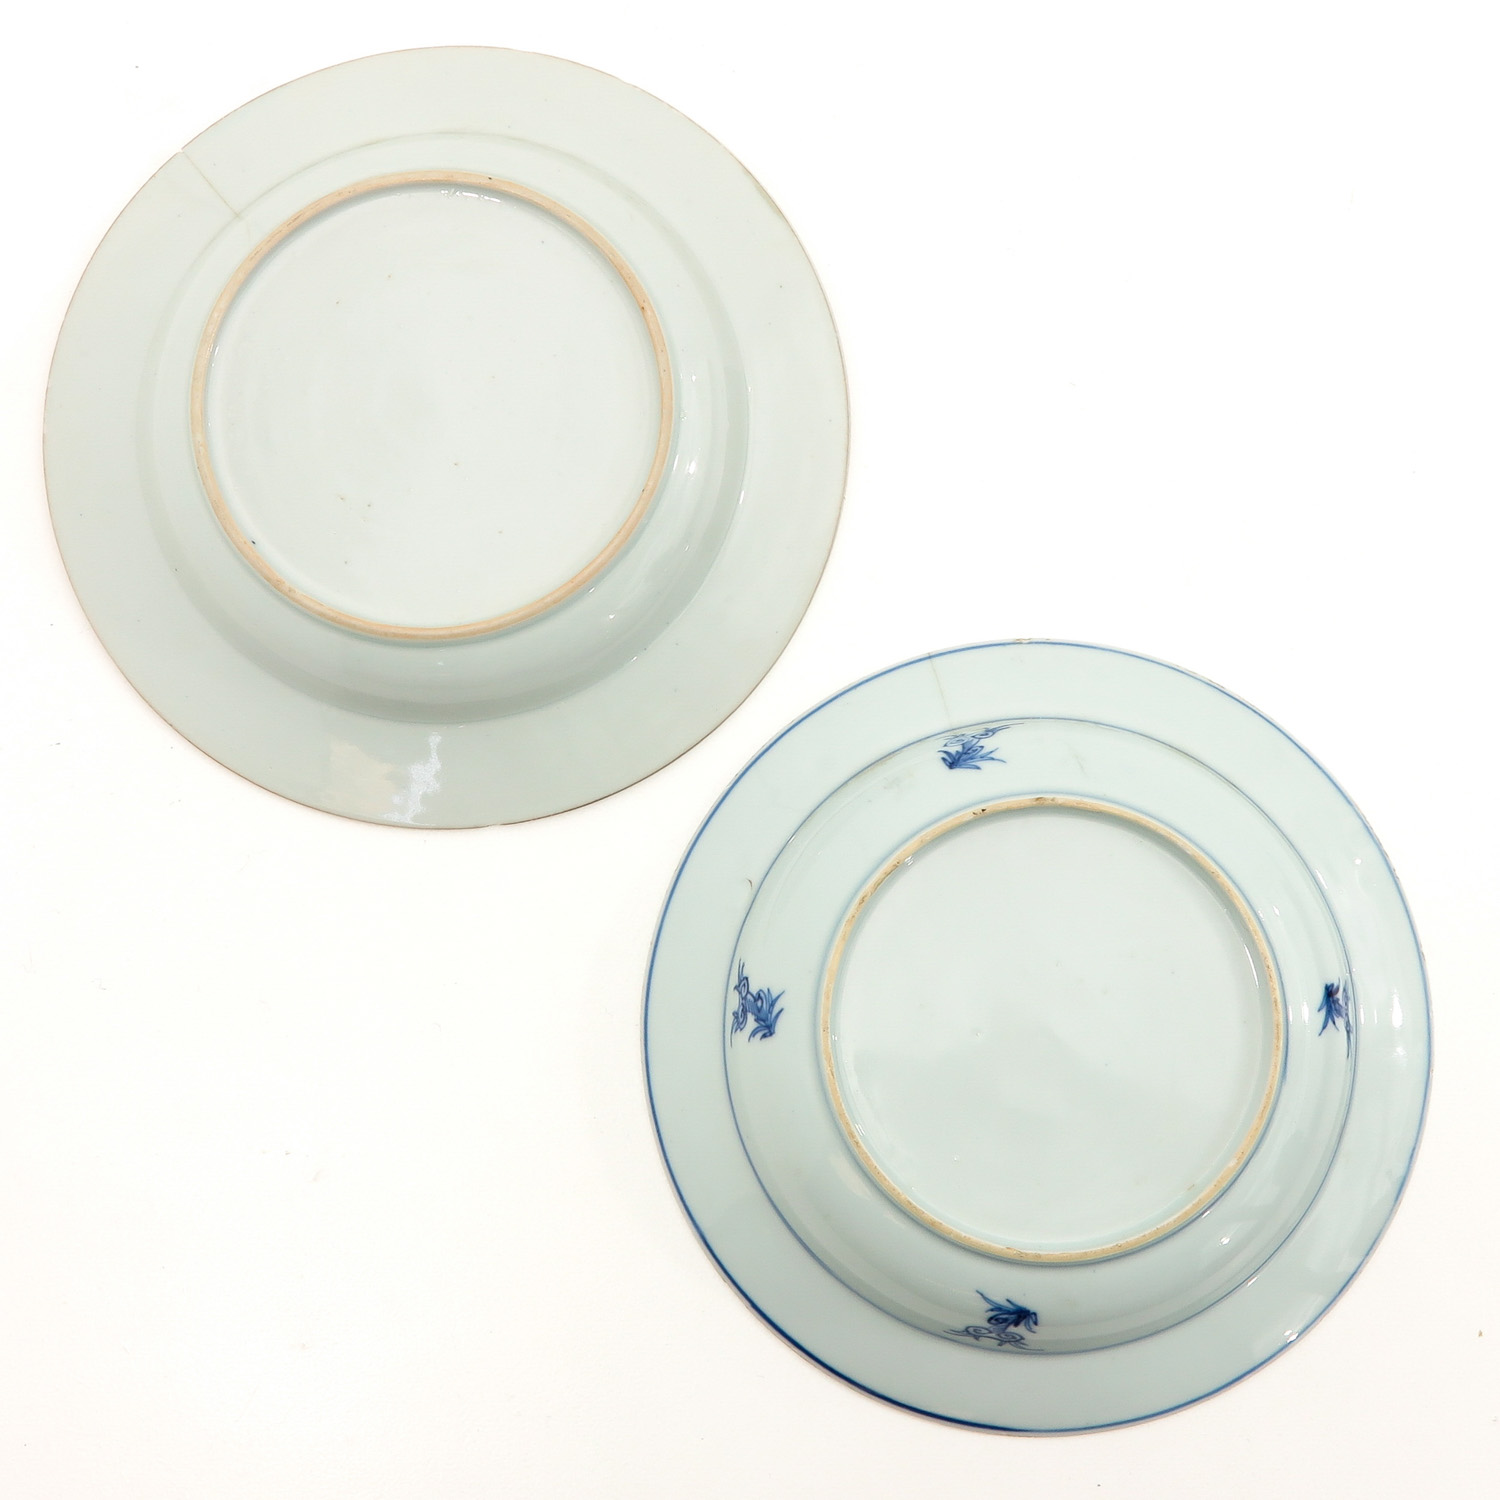 A Collection of 6 Blue and White Plates - Image 4 of 10